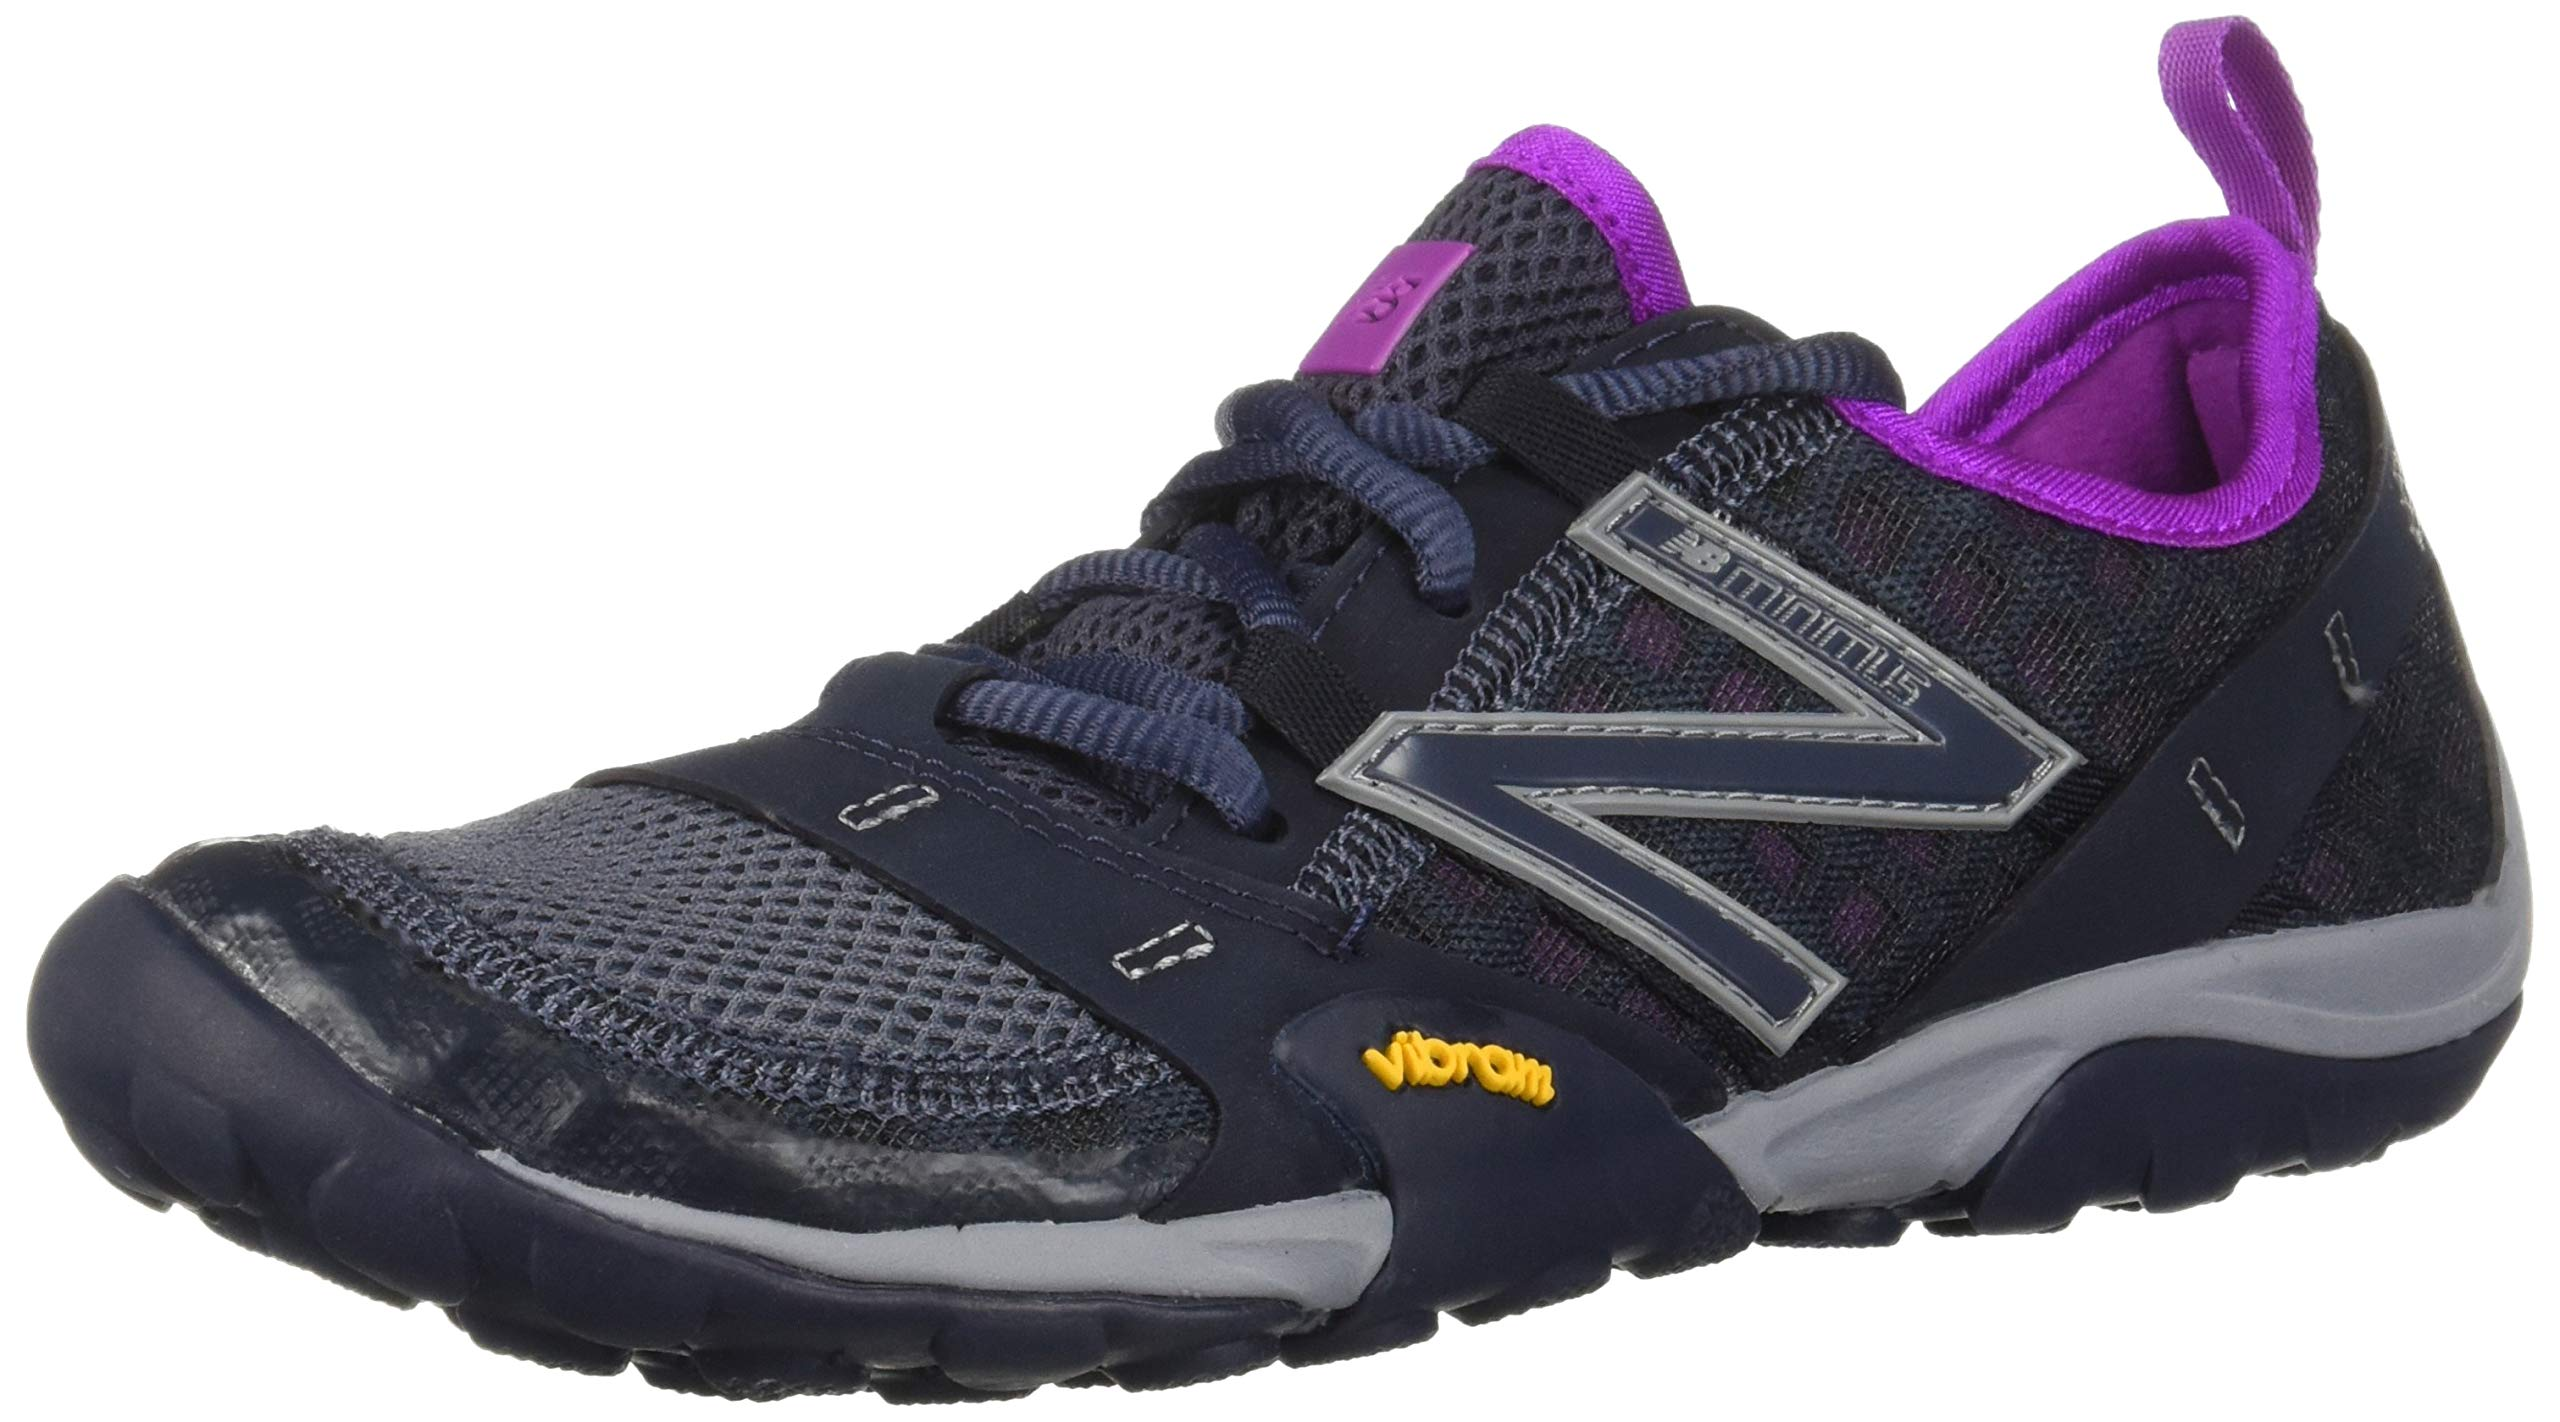 New Balance Women's 10v1 Minimus Trail Running Shoe, Outerspace/Voltage Violet, 9.5 D US by New Balance